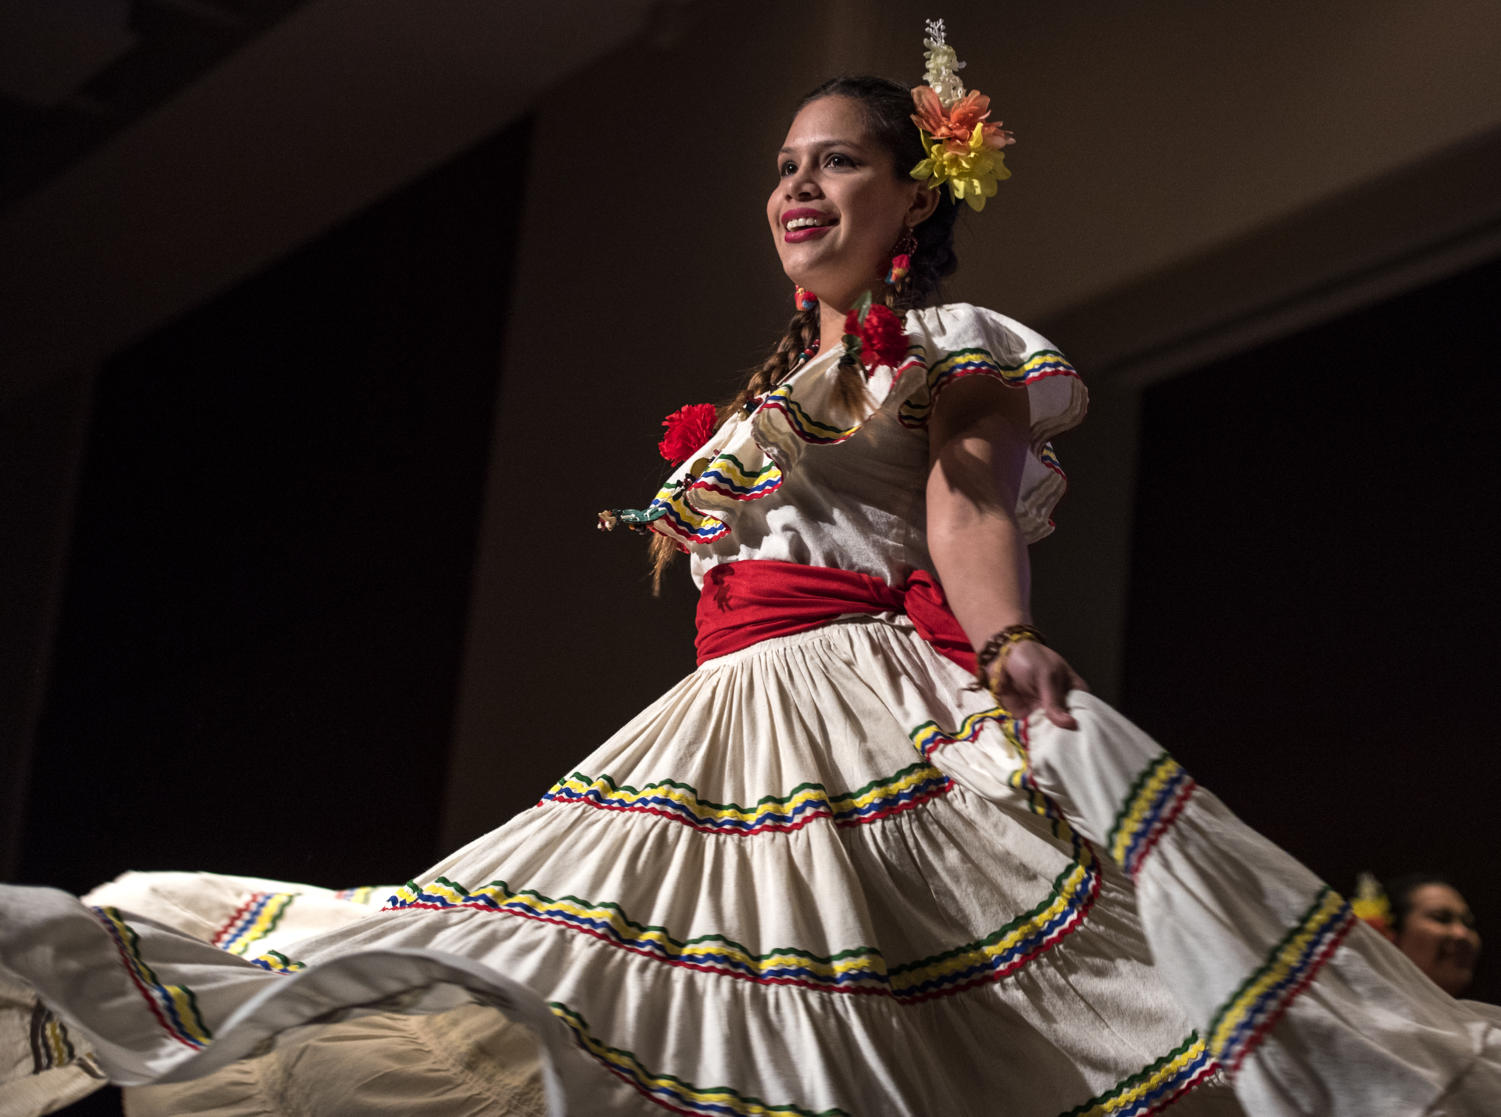 Andrea+Espinal%2C+a+graduate+student+studying+foreign+languages+%26+literature+from+Honduras%2C+performs+the+traditional+%E2%80%9CPunta%E2%80%9D+dance+Friday%2C+Feb.+9%2C+2018%2C+inside+the+Student+Center+Ballrooms+during+the+International+Festival+Cultural+Show.+%28Mary+Newman+%7C+%40MaryNewmanDE%29